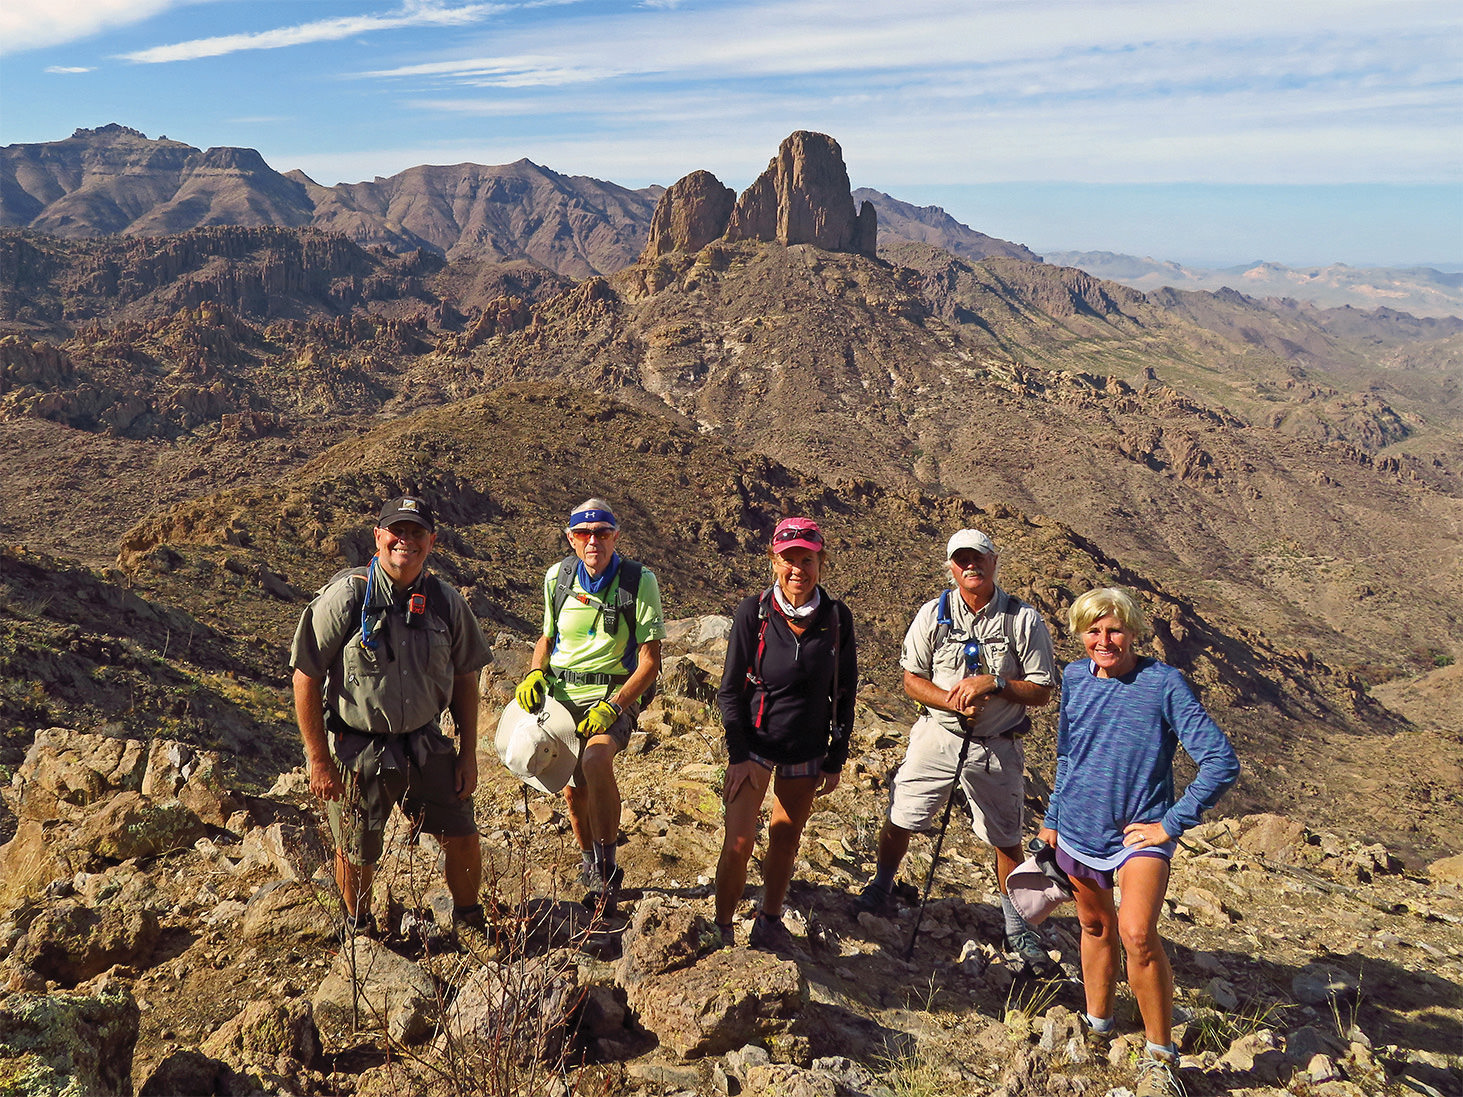 Left to right: Neal Wring, Lynn Warren (photographer), Kris Raczkiewicz, Steve McElroy, and Eileen Lords-Mosse pausing on top of Bluff Springs Mt. with Weaver's Needle in the background.